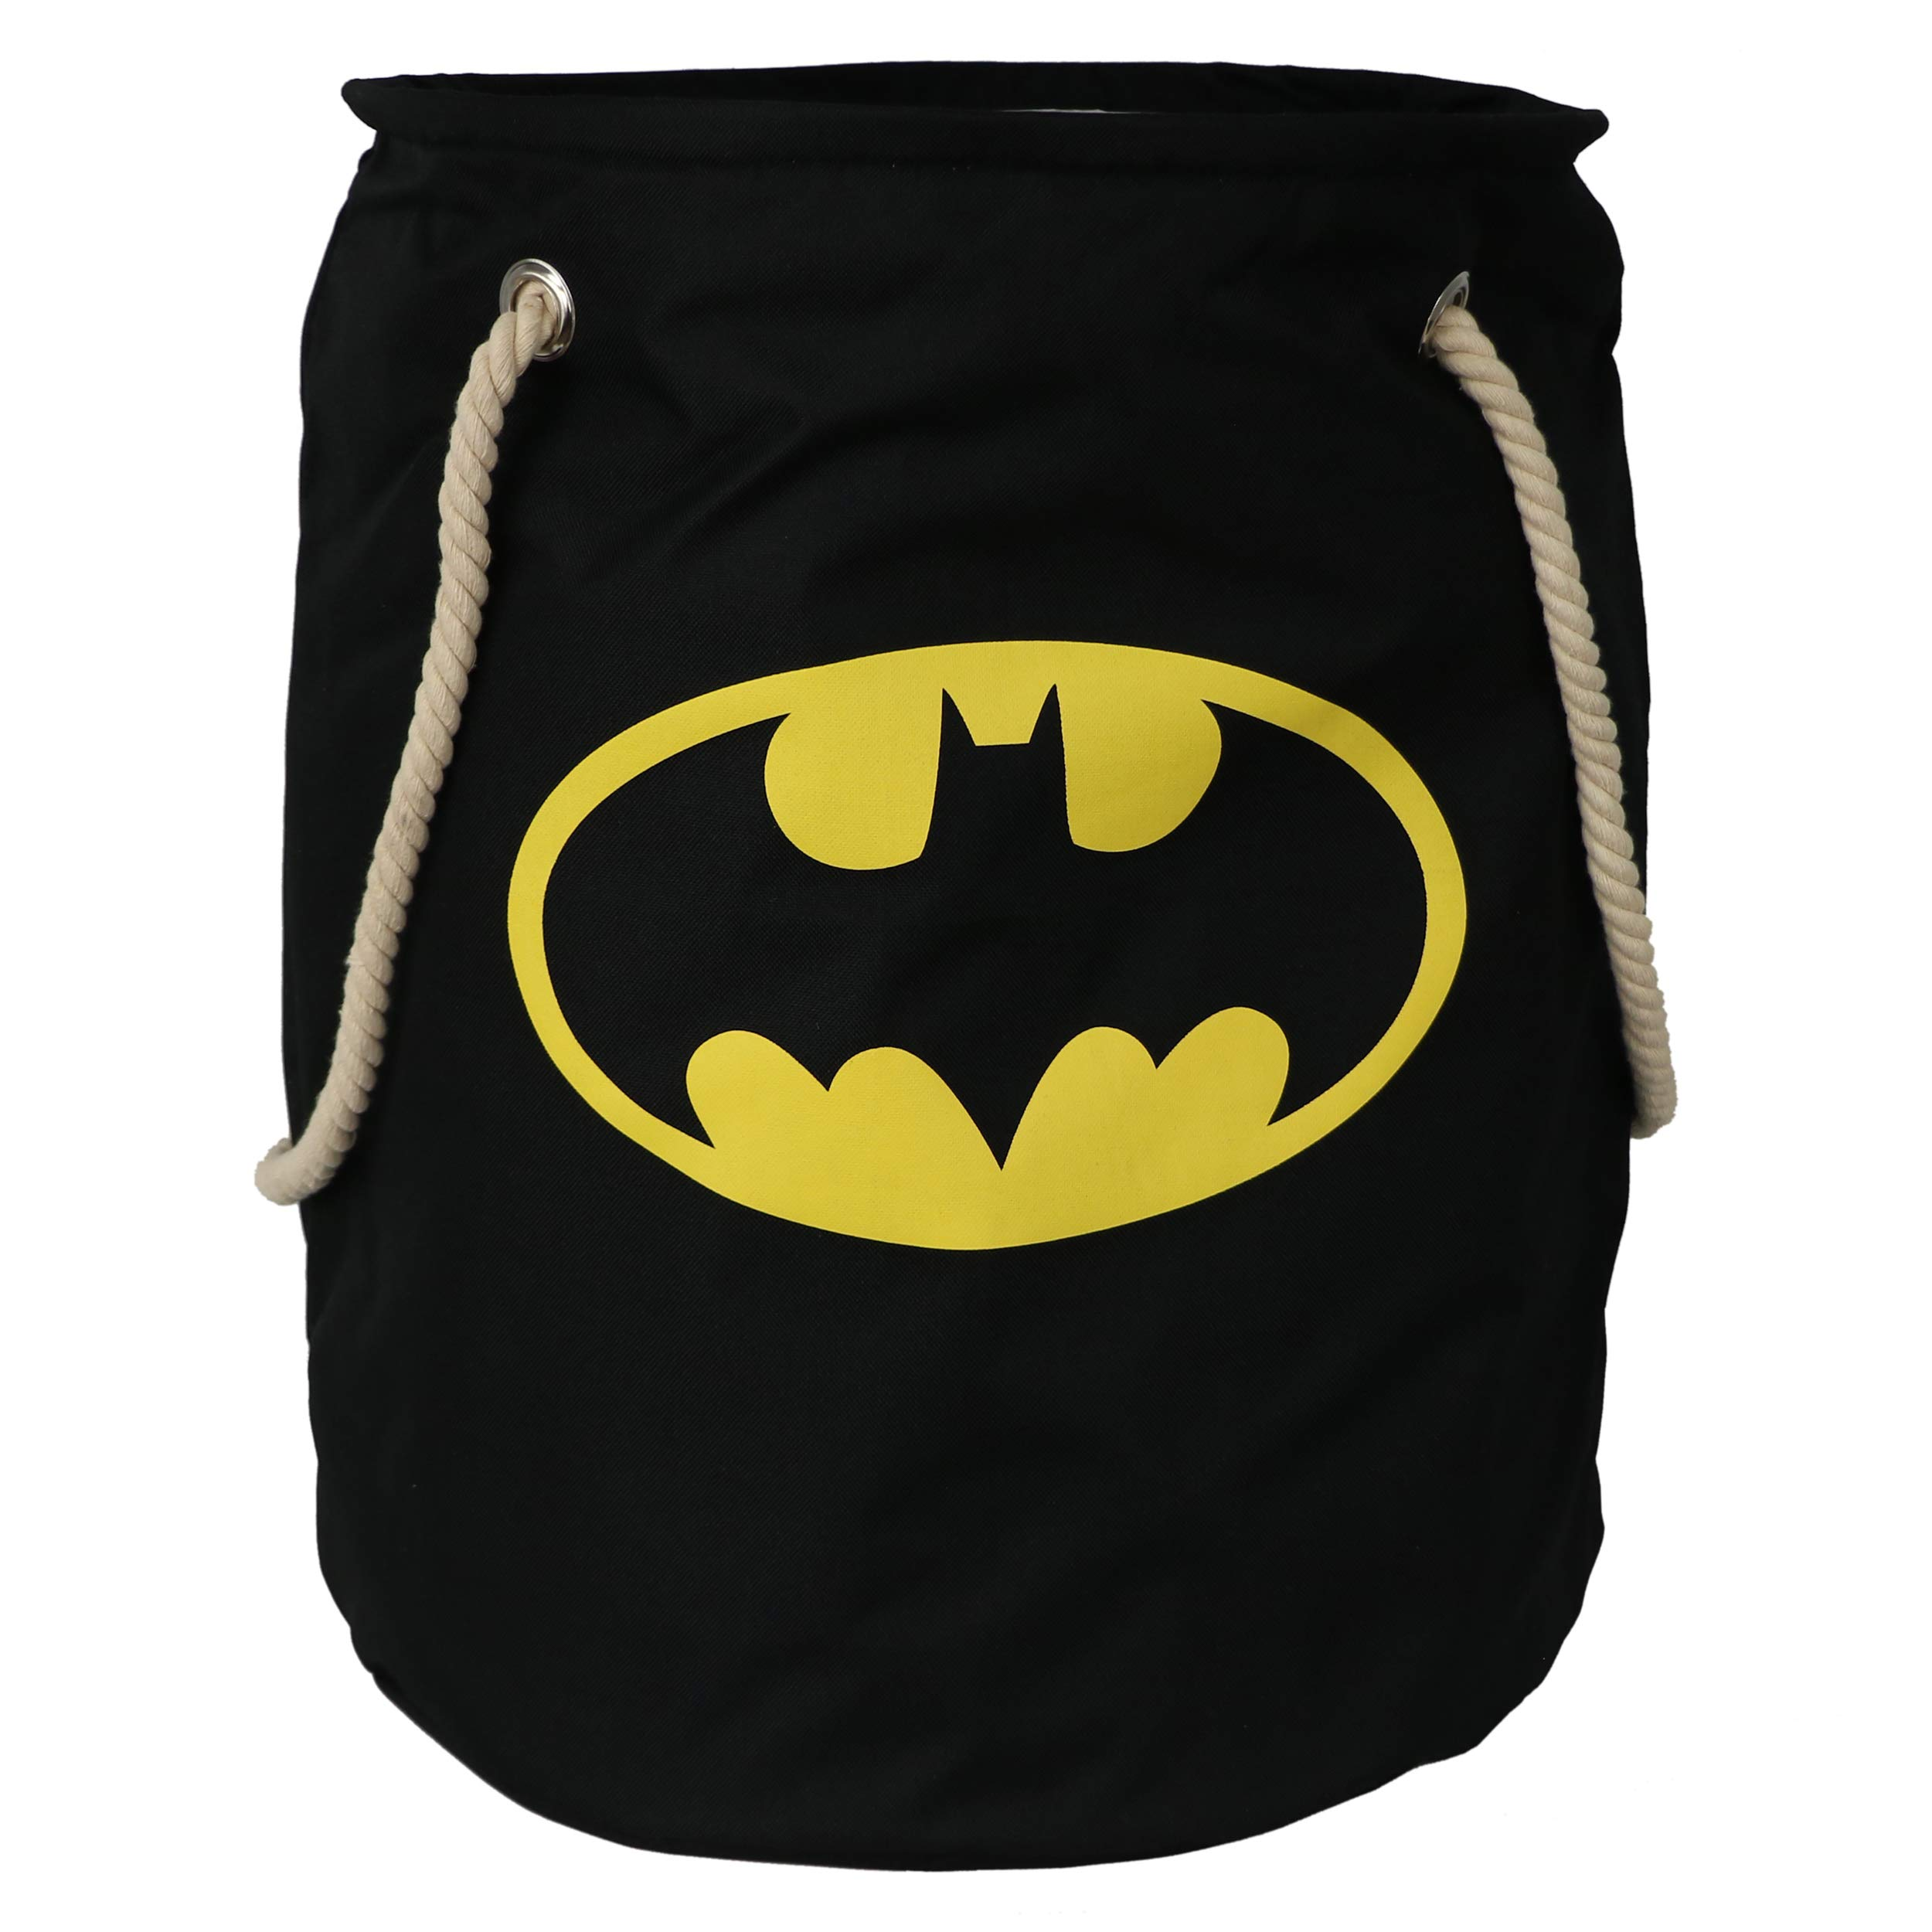 Batman - Large Bin for Toys - Bedroom Organizer - Large Storage Bin with Large Capacity. Adult and Kids Room Décor, for All Ages!